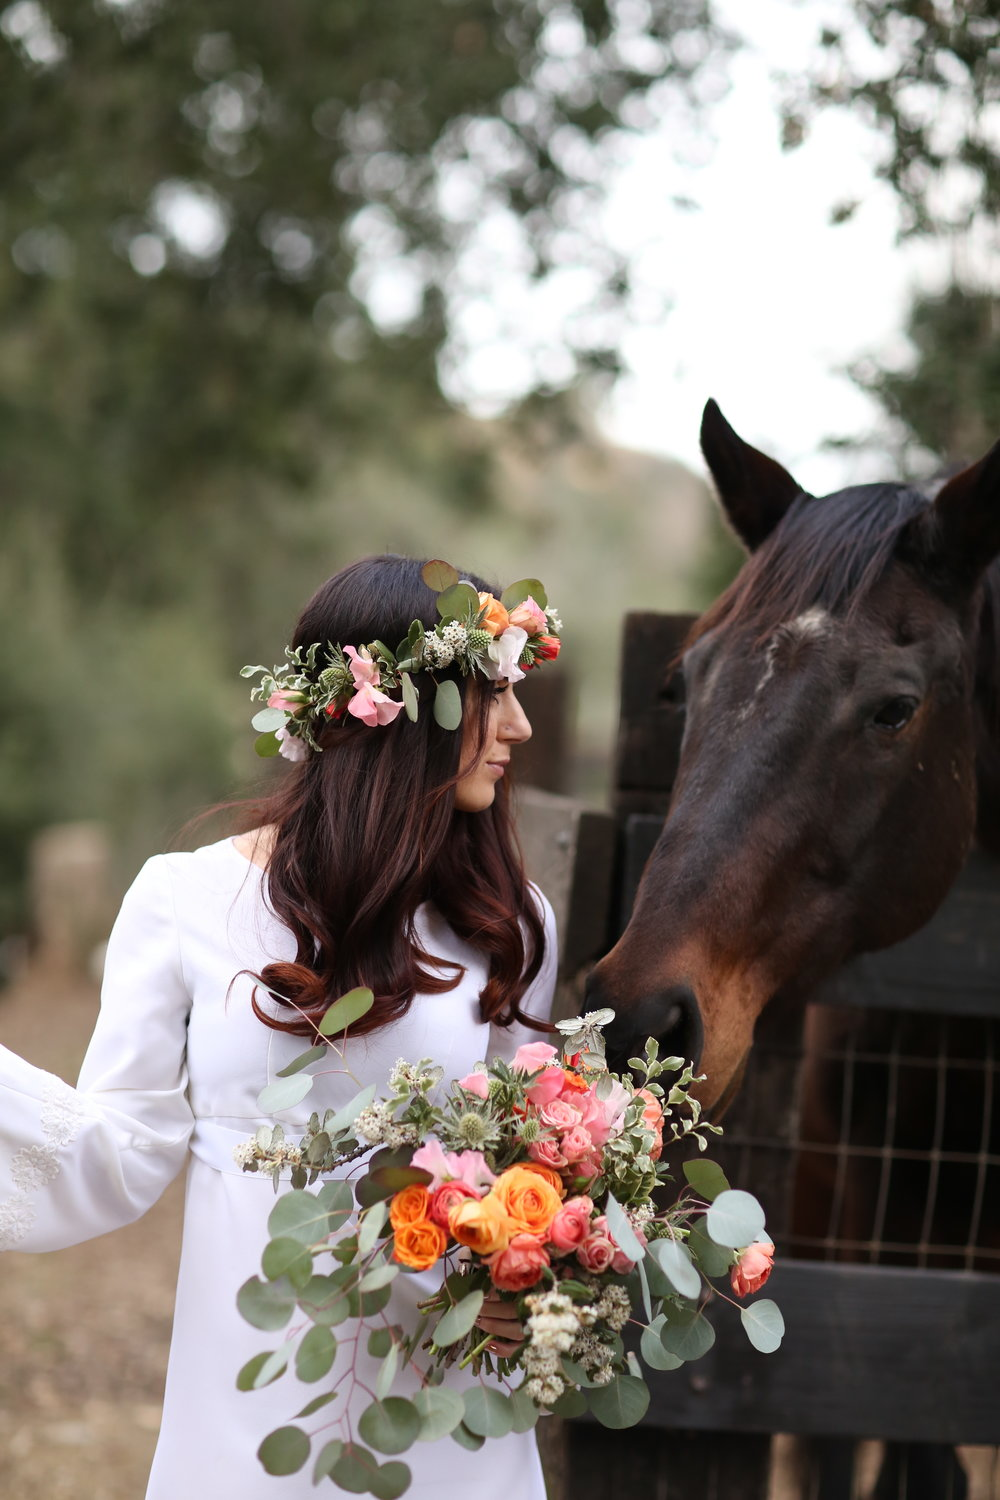 Horse sniffing the bridal bouquet. Bride is wearing vintage dress.